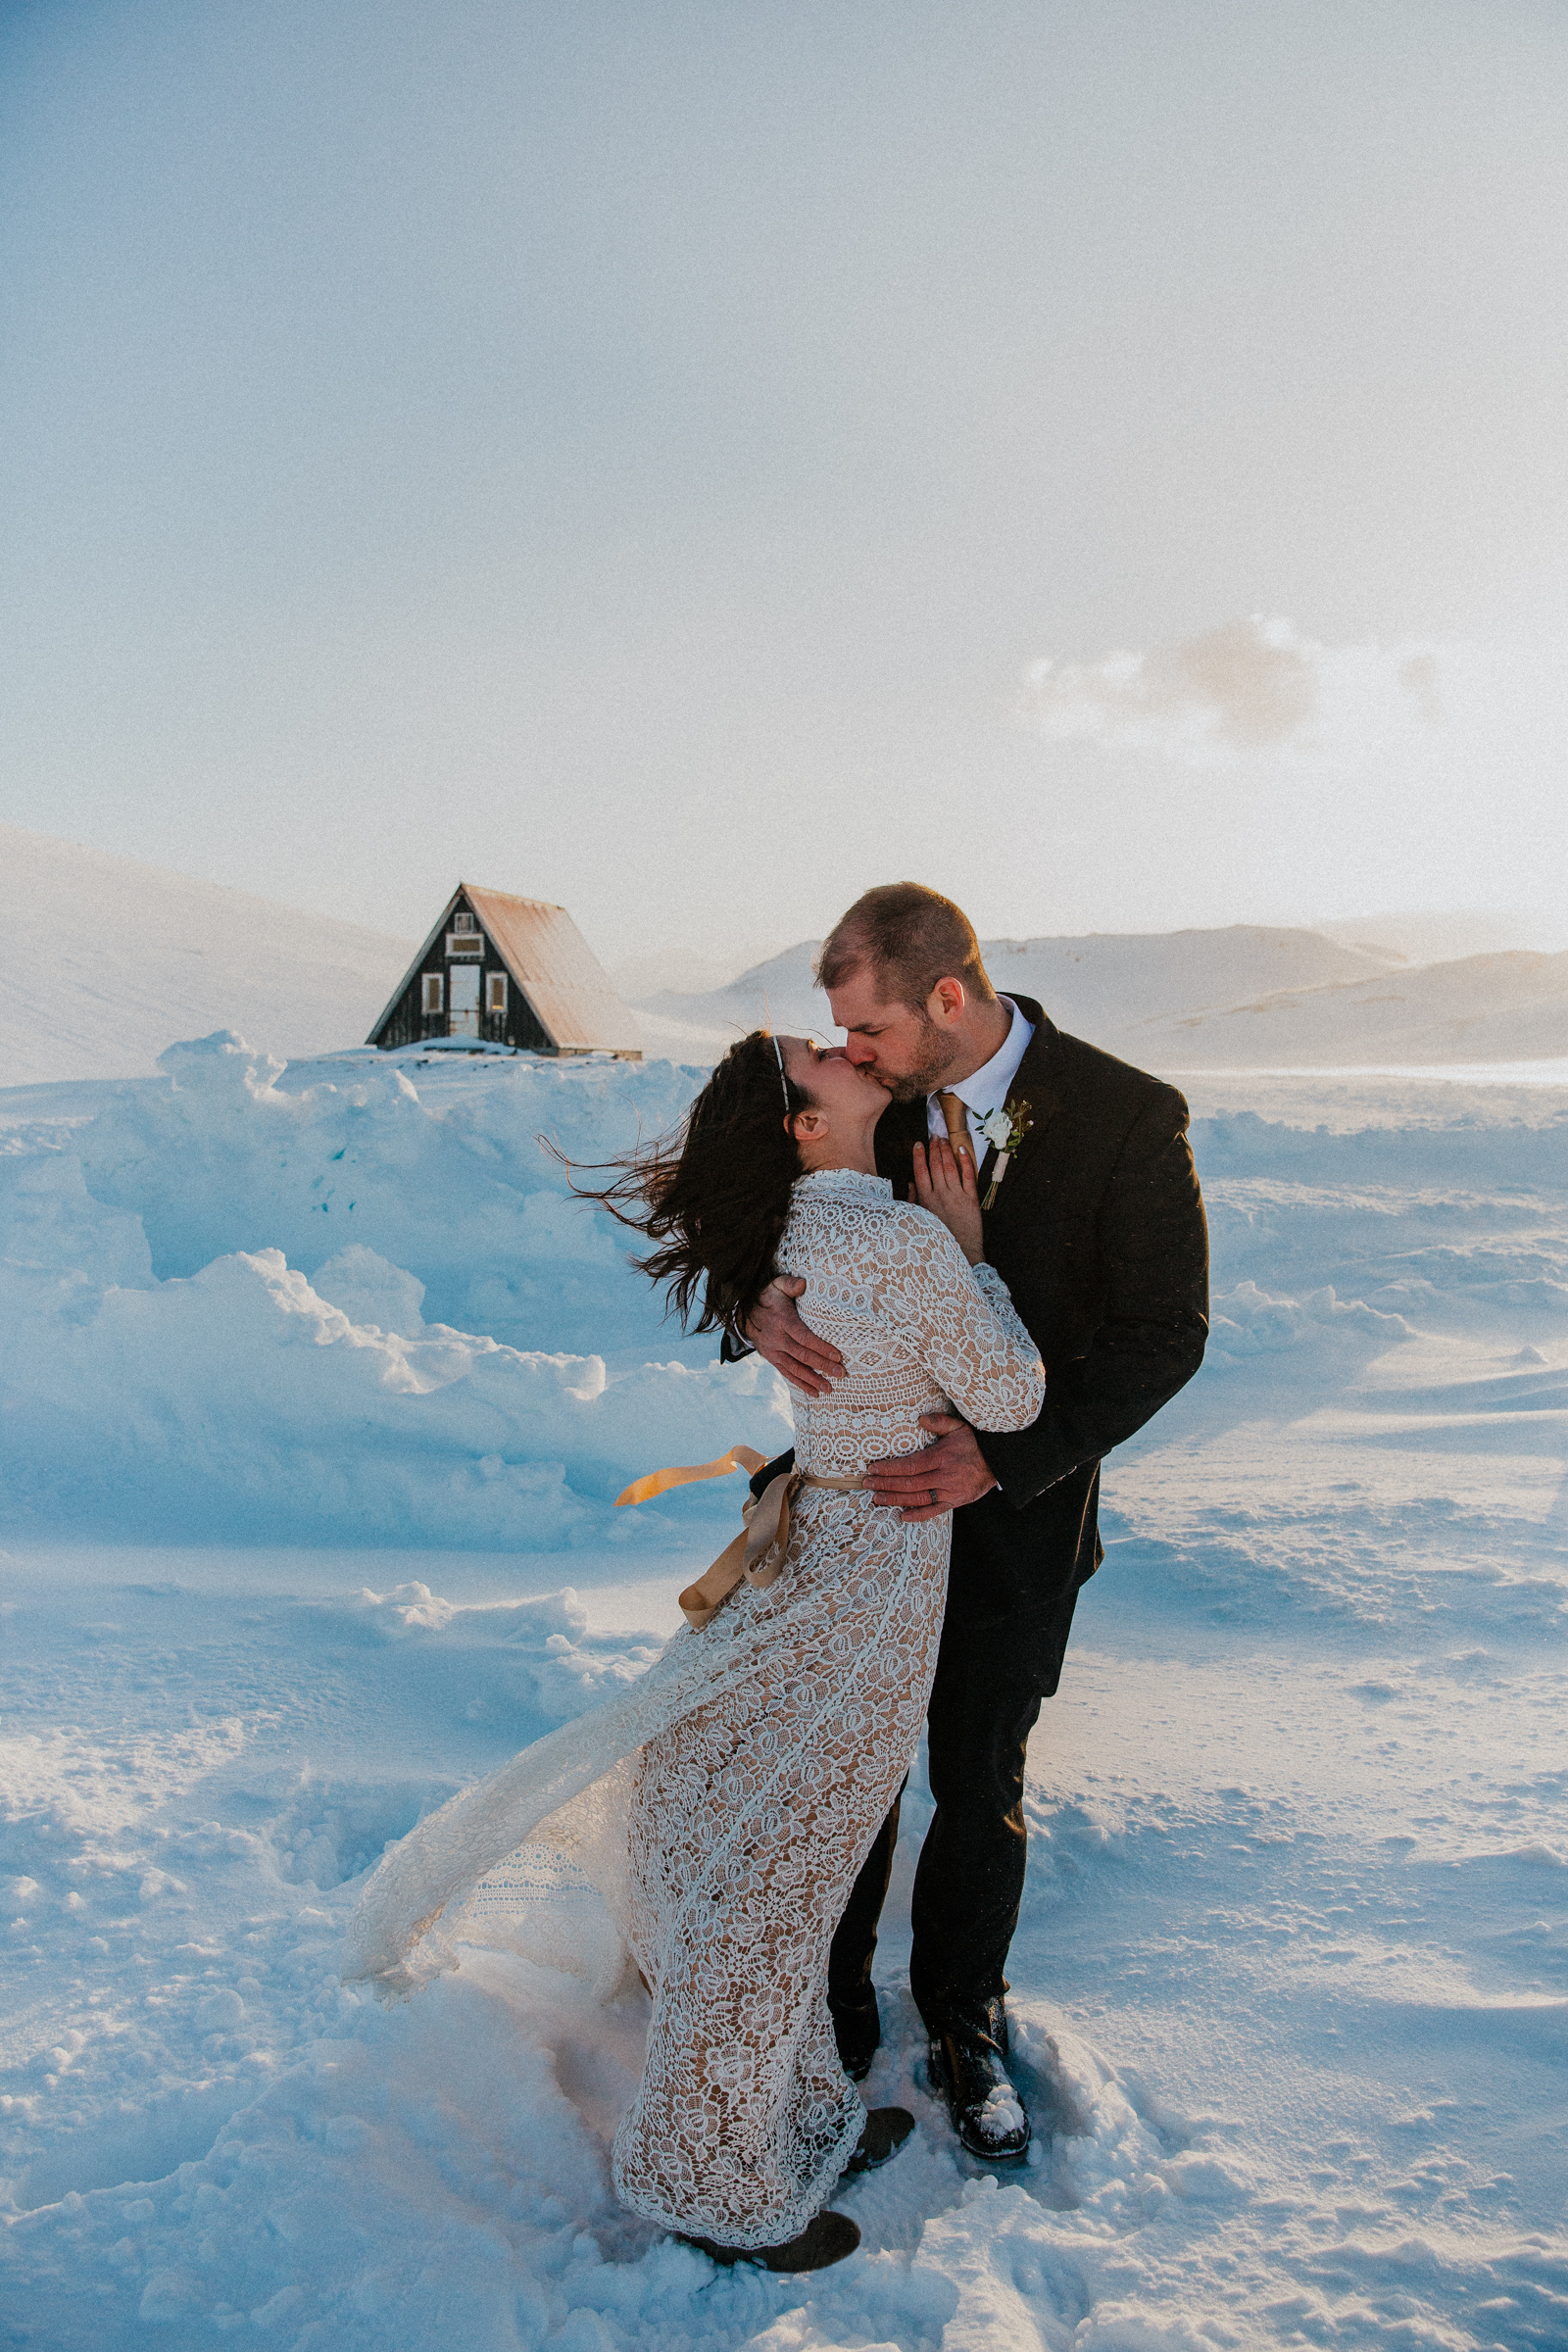 Elopement couple kiss in Iceland blizzard - photo by Christin Eide Photography